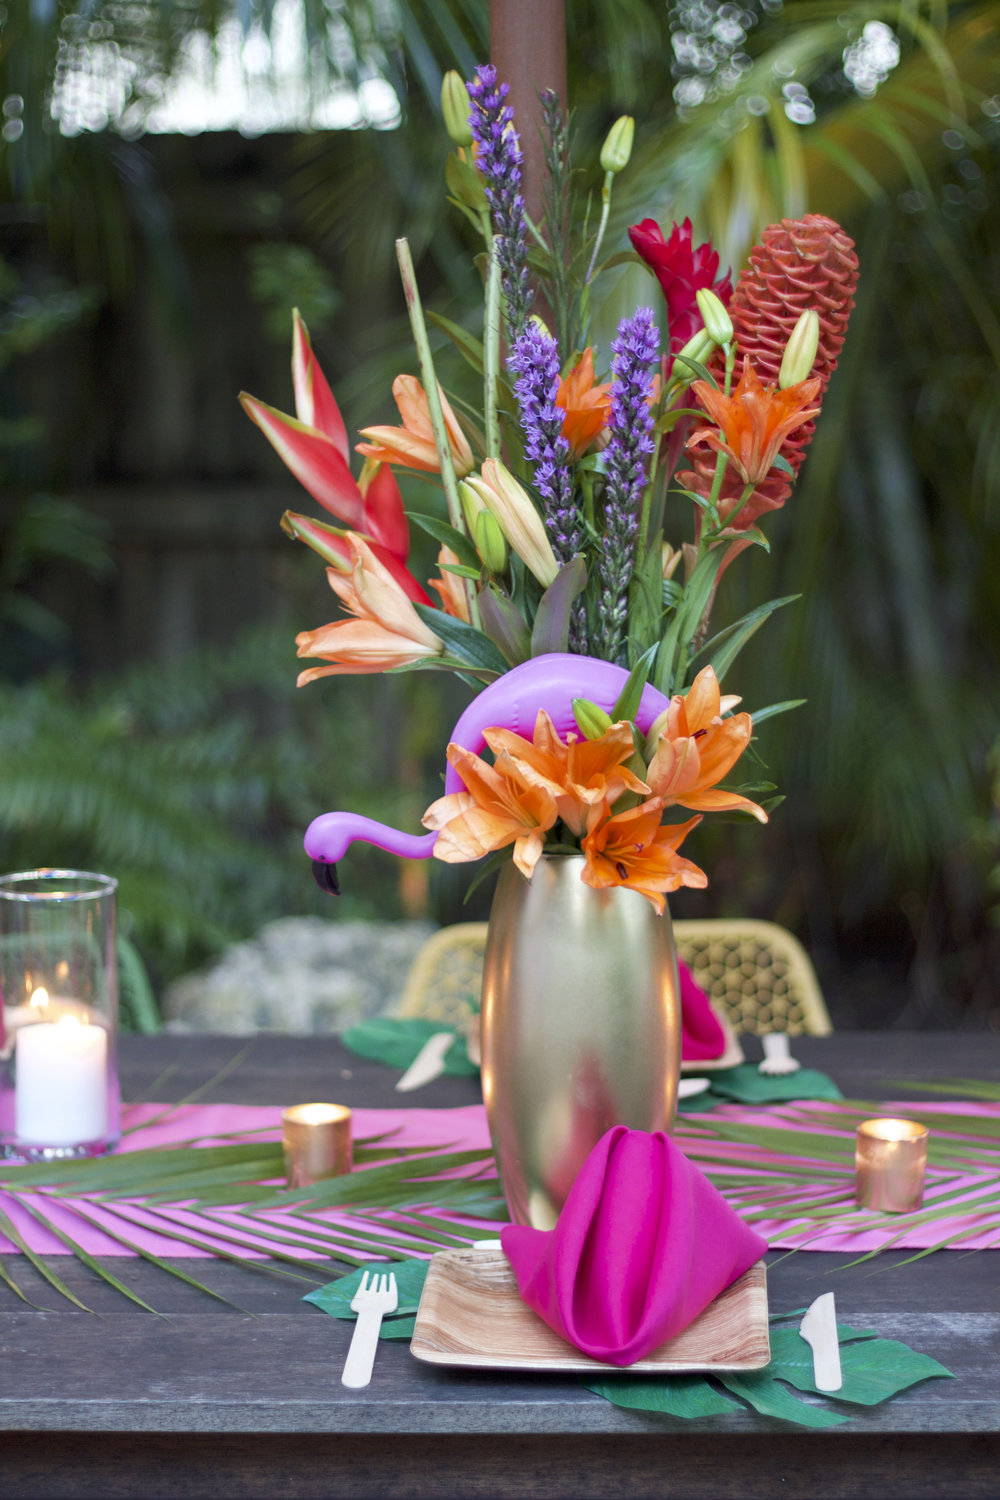 Here's a close-up of one of the large tropical floral arrangements.